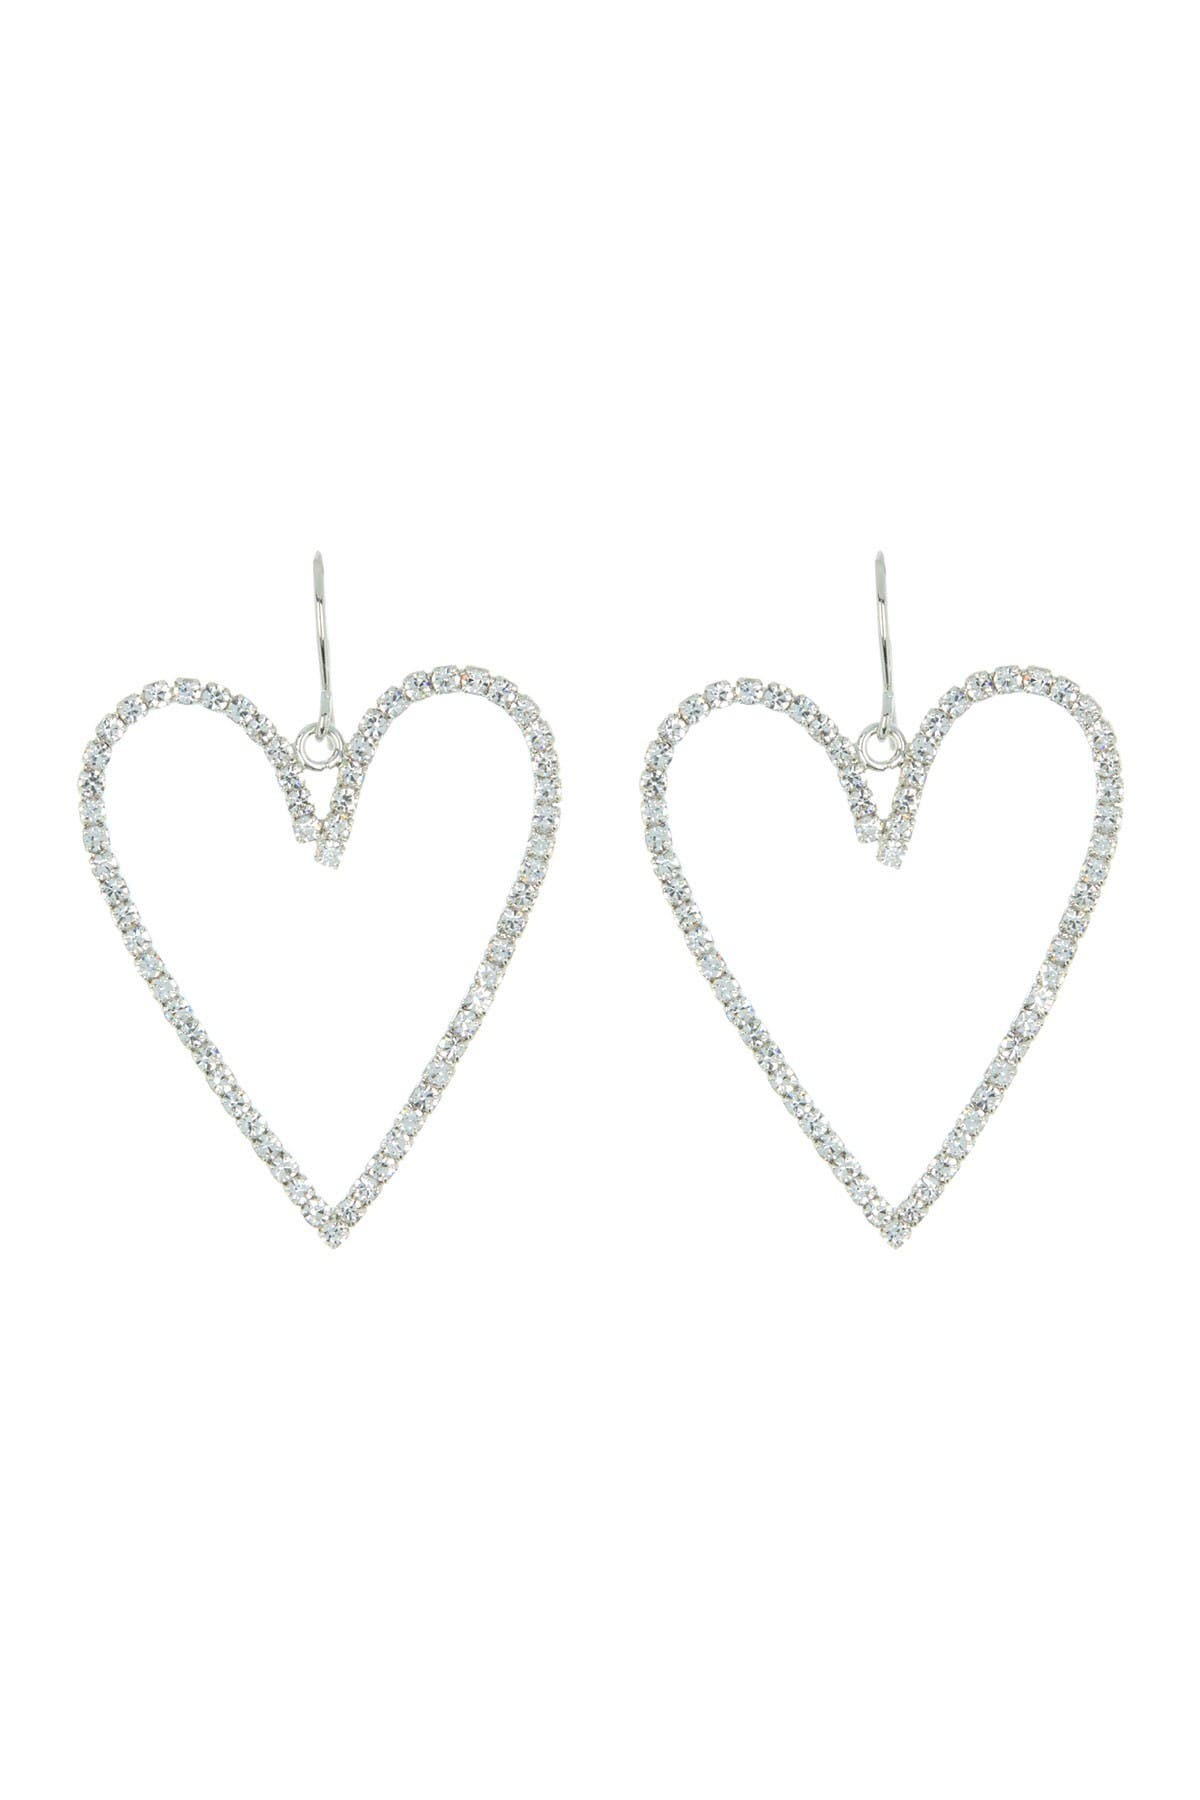 Image of CRISTABELLE Pave Crystal Open Heart Drop Earrings